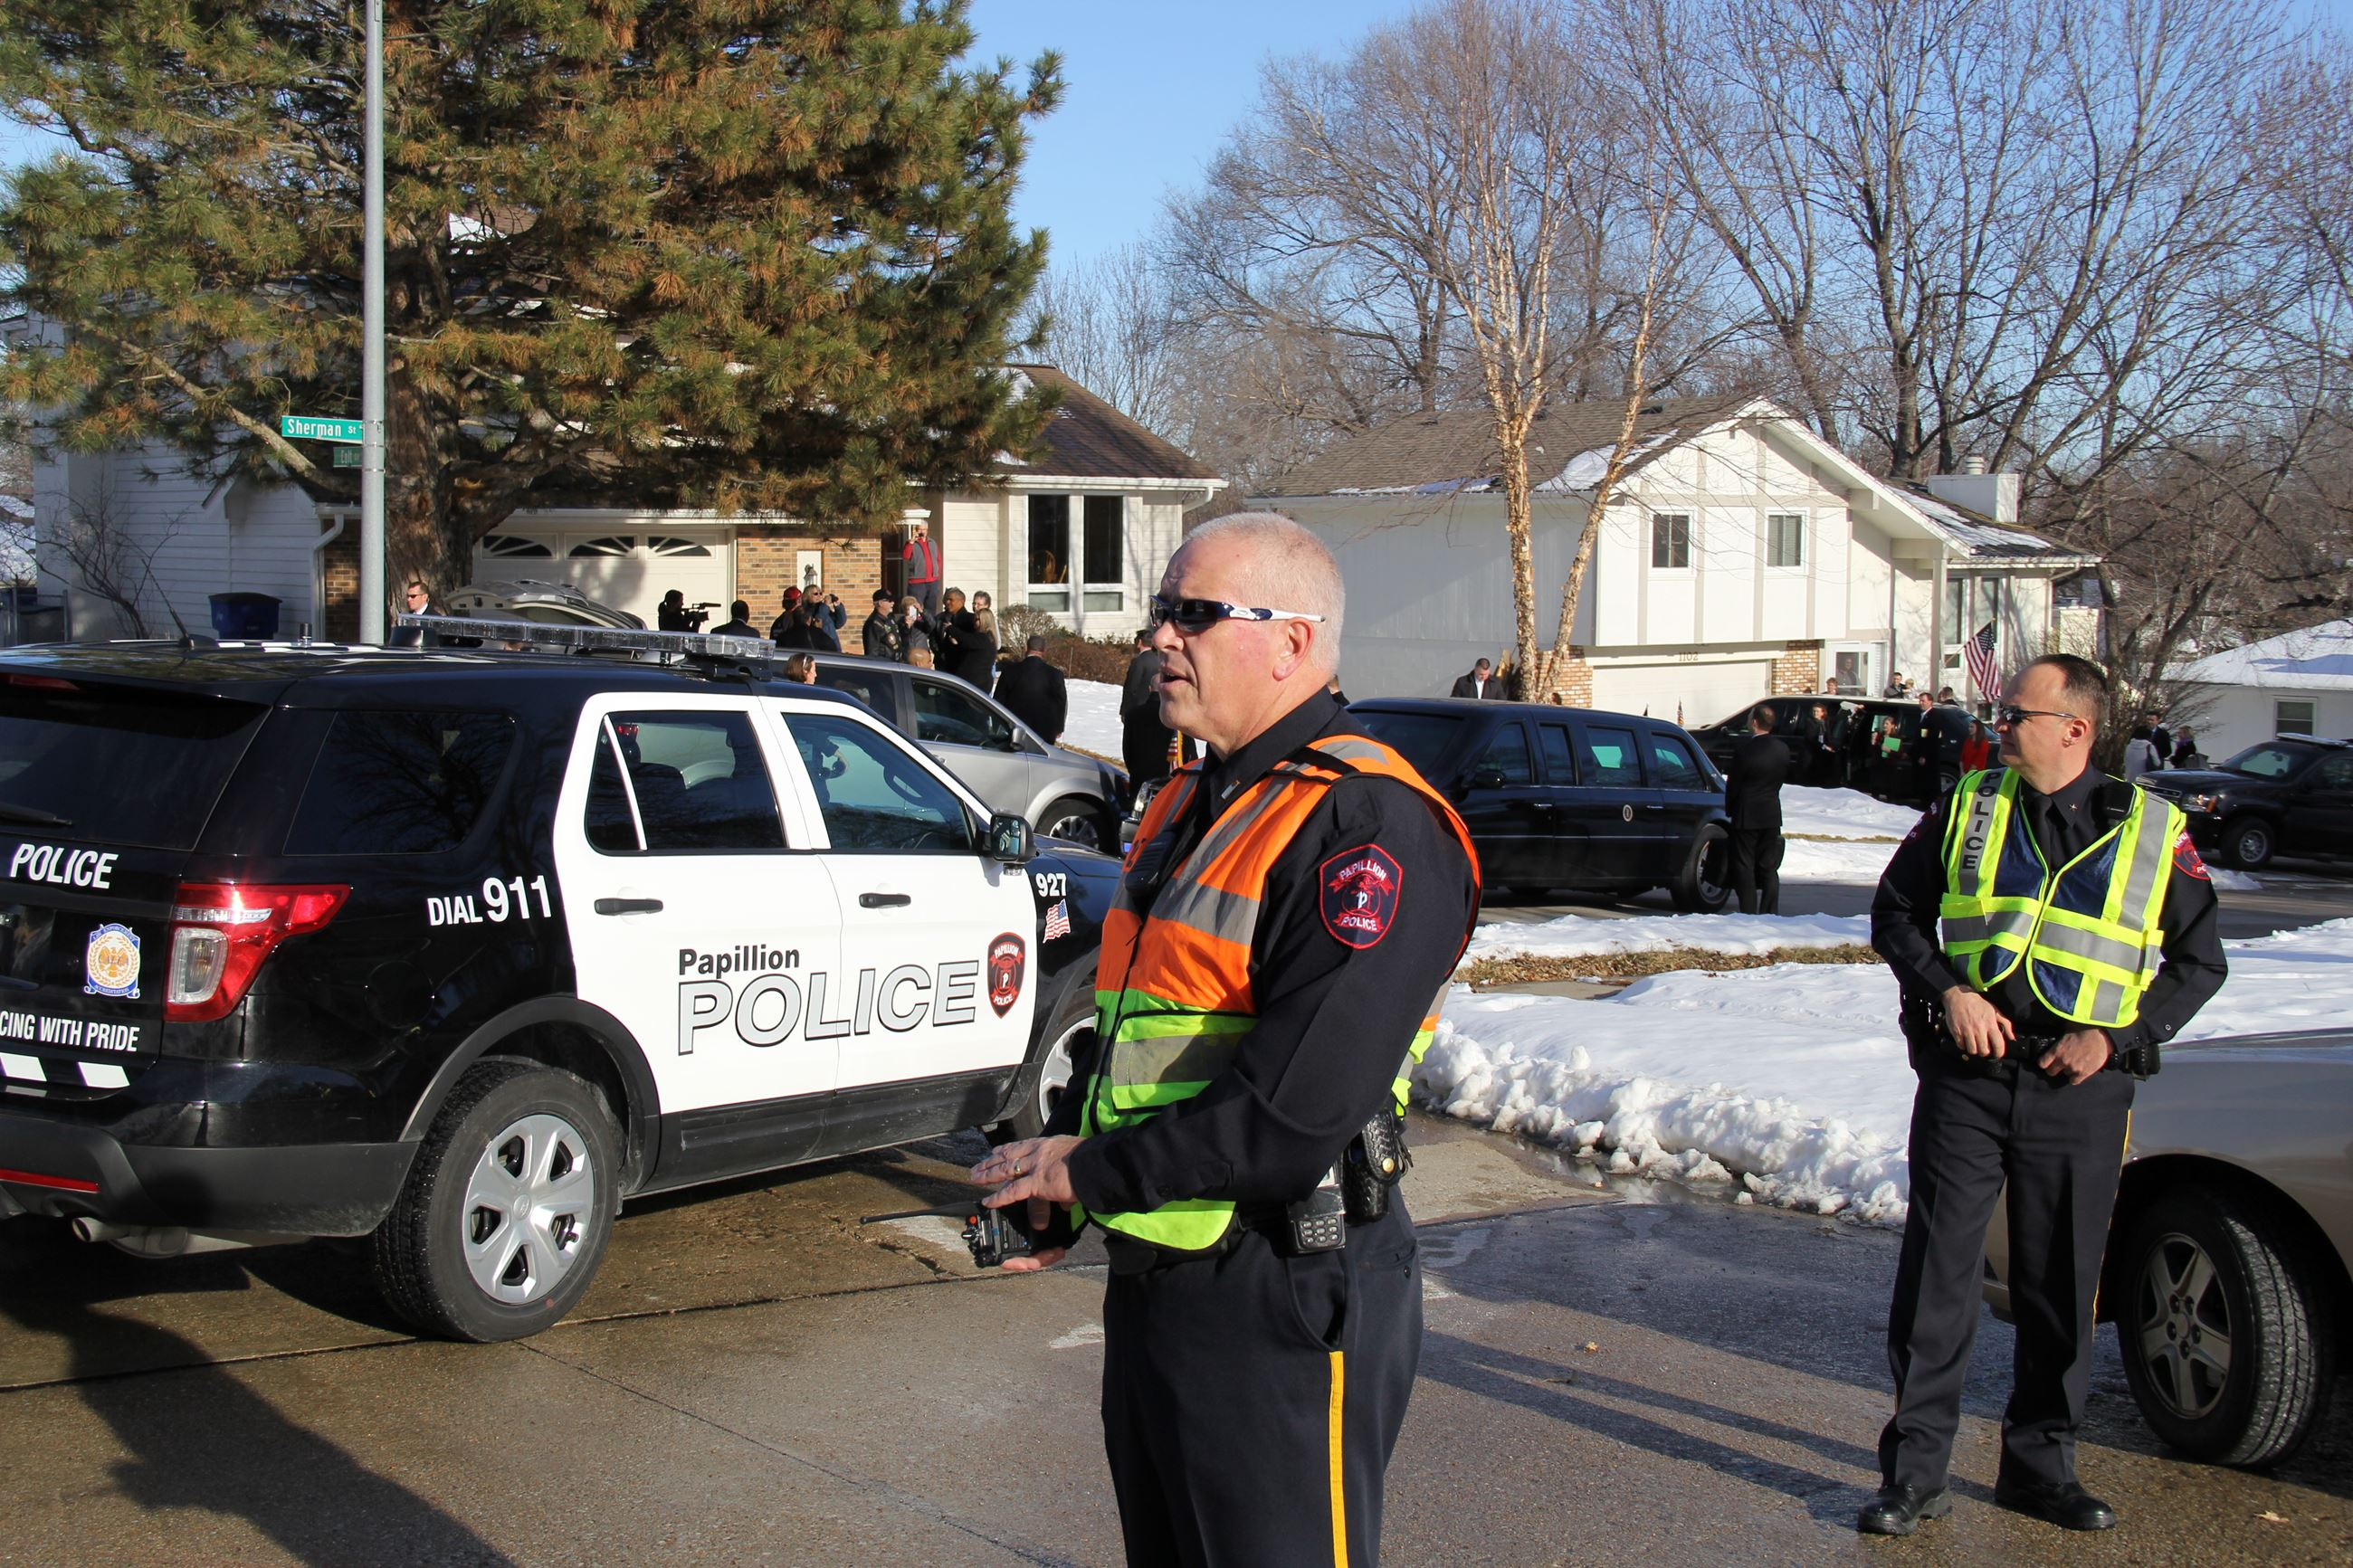 Papillion Police provide security support during a visit by President Obama.